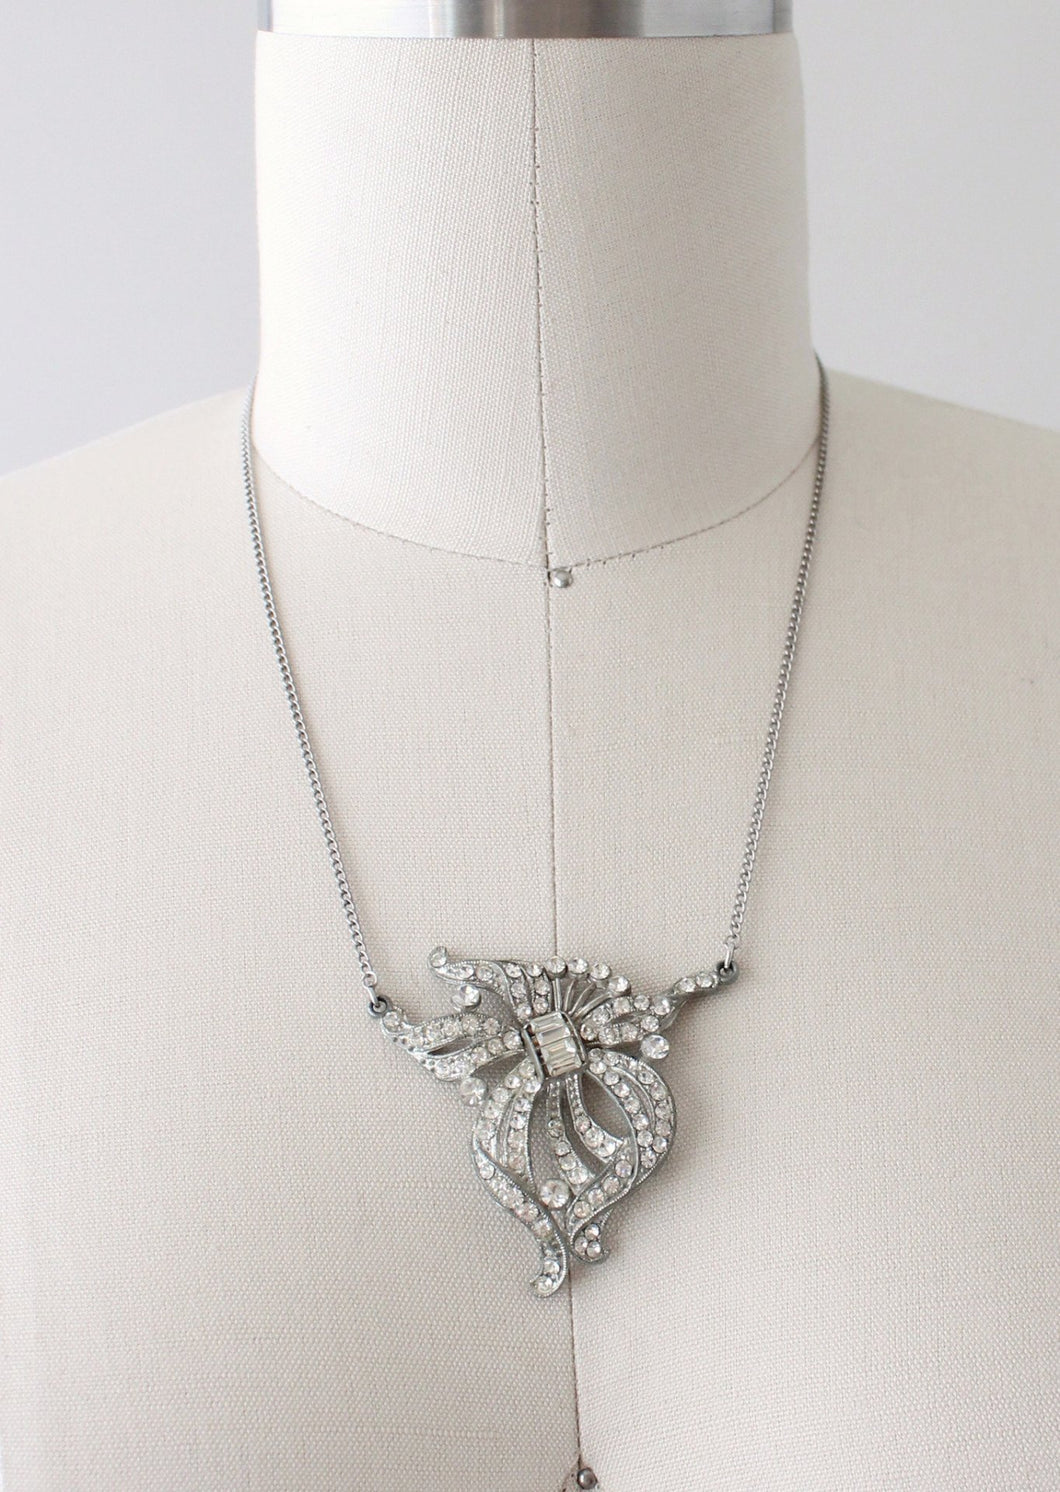 Vintage 1930s Dramatic Rhinestone and Pot Metal Necklace